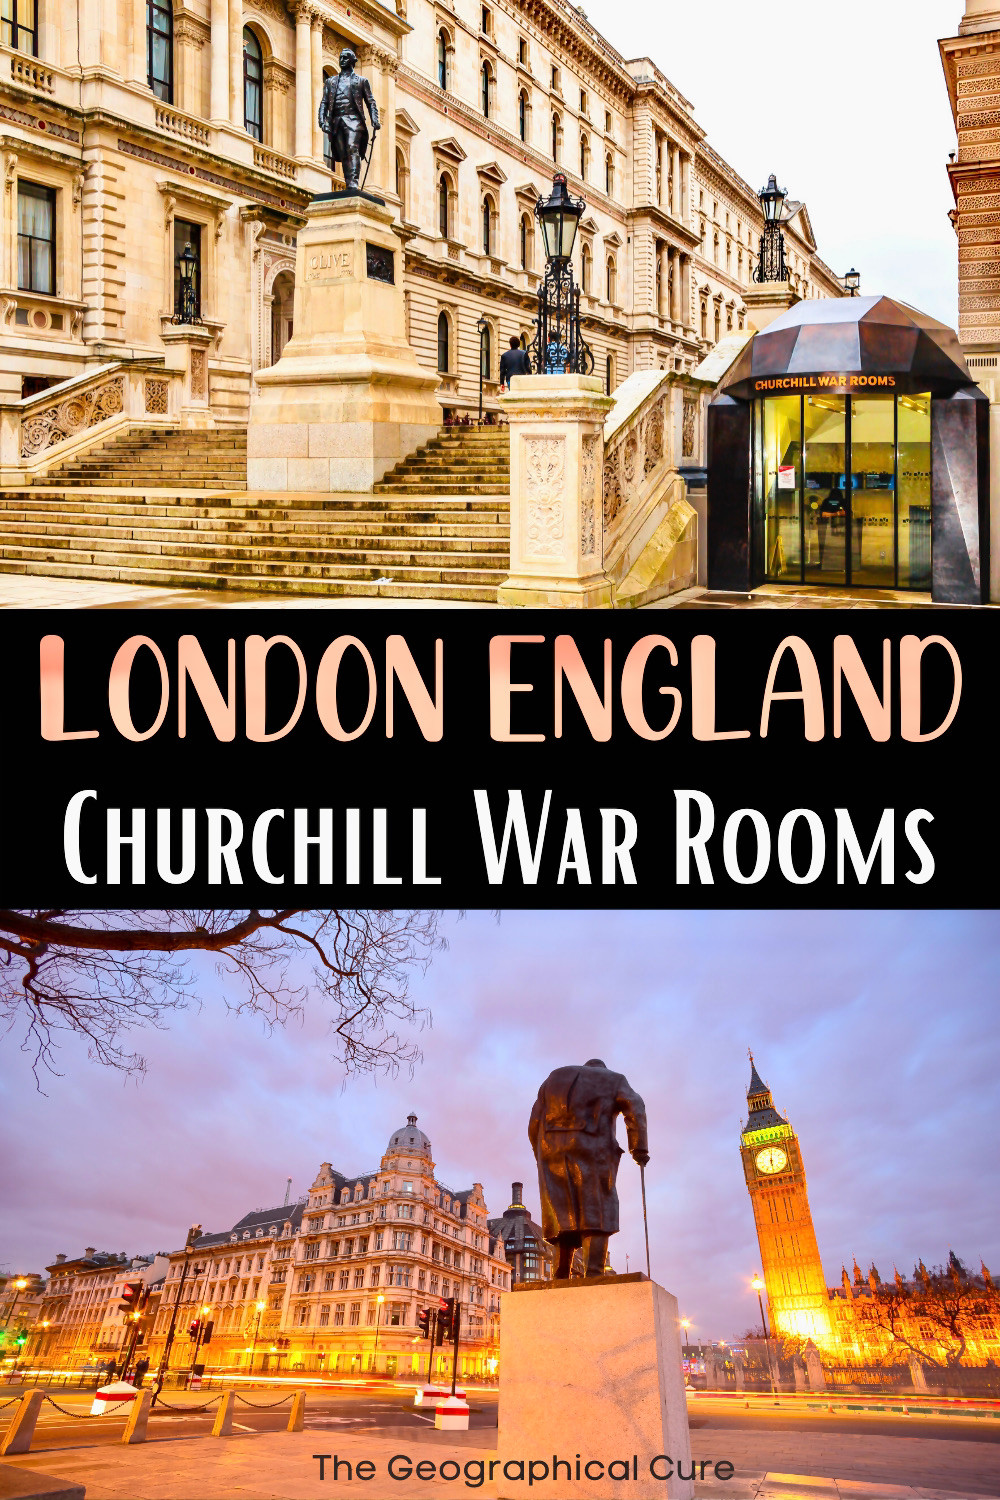 ultimate guide to the Churchill War Rooms, a must see museum in London England